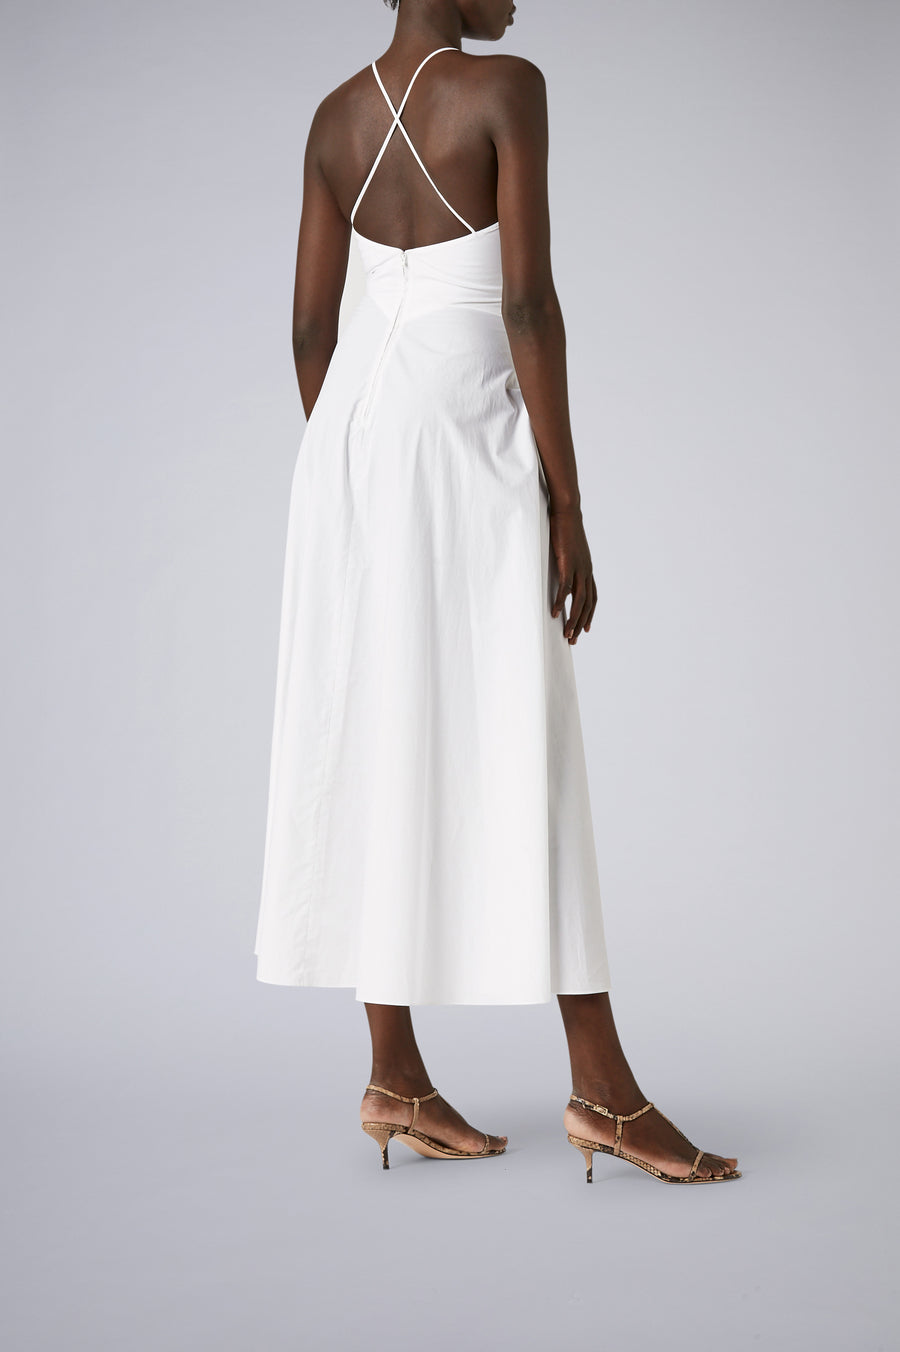 Constructed from a cotton blend fabric with a flattering V-neckline and feminine silhouette.